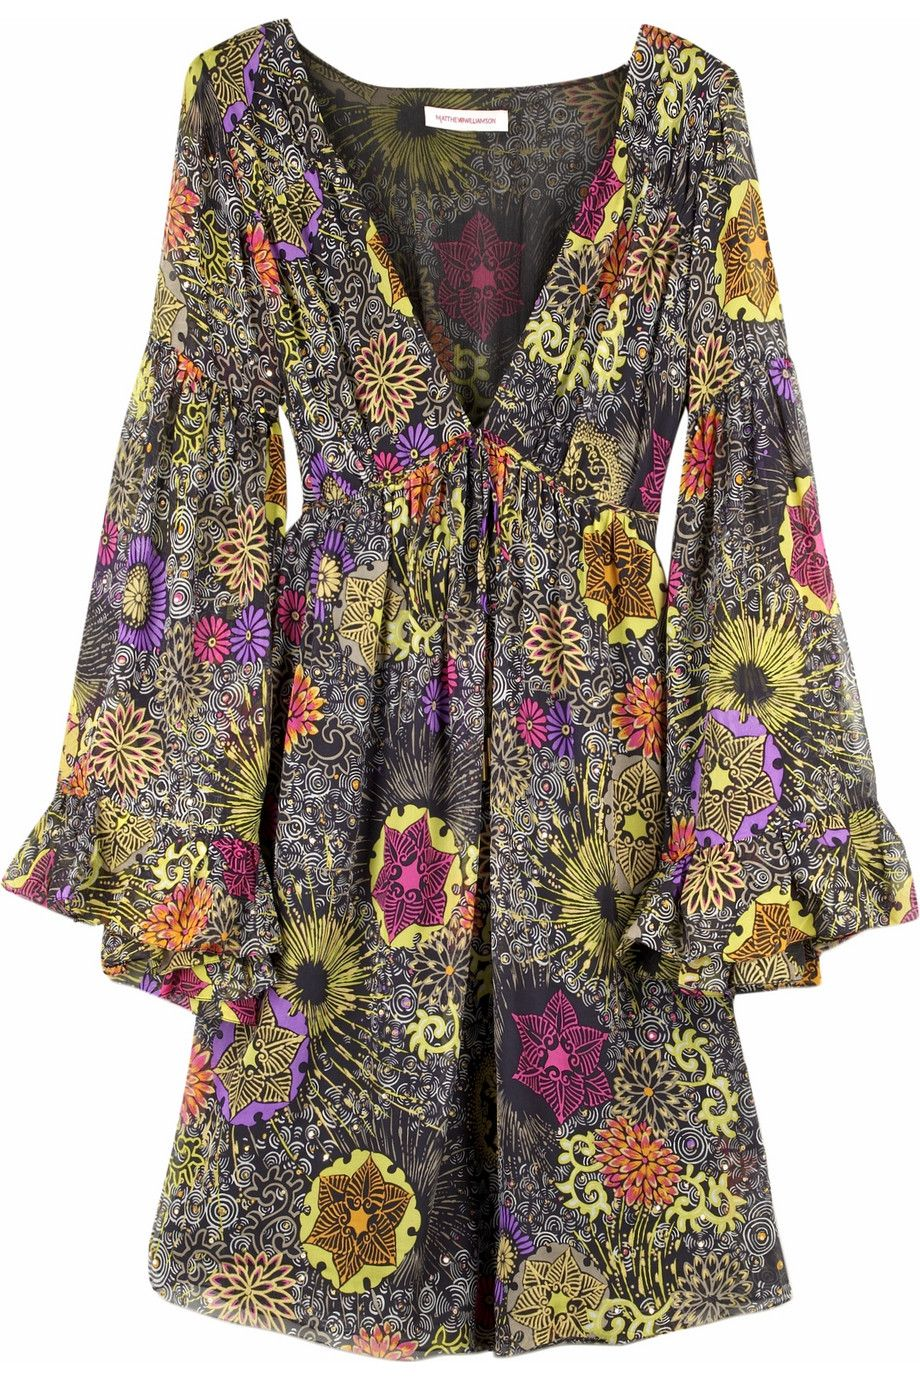 Matthew Williamson floral dress